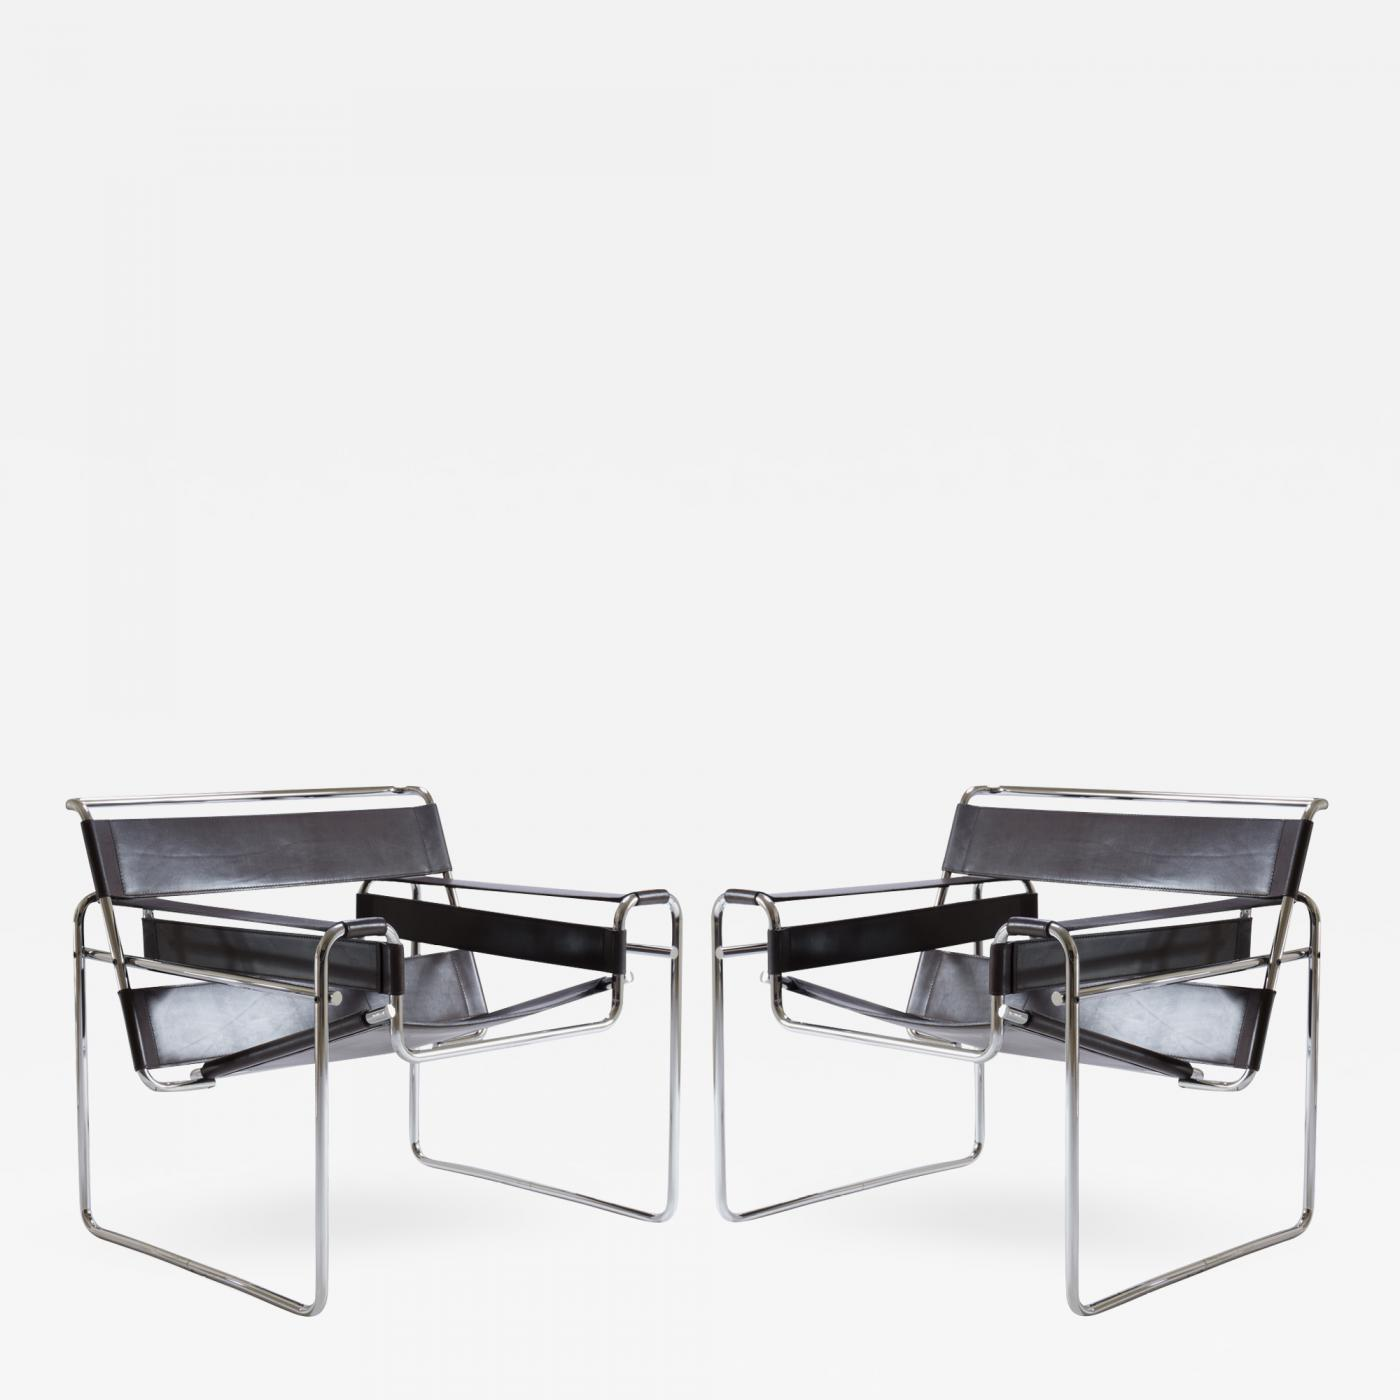 Wassily Chair Marcel Breuer Wassily Chairs In Brown Leather By Marcel Breuer For Gavina